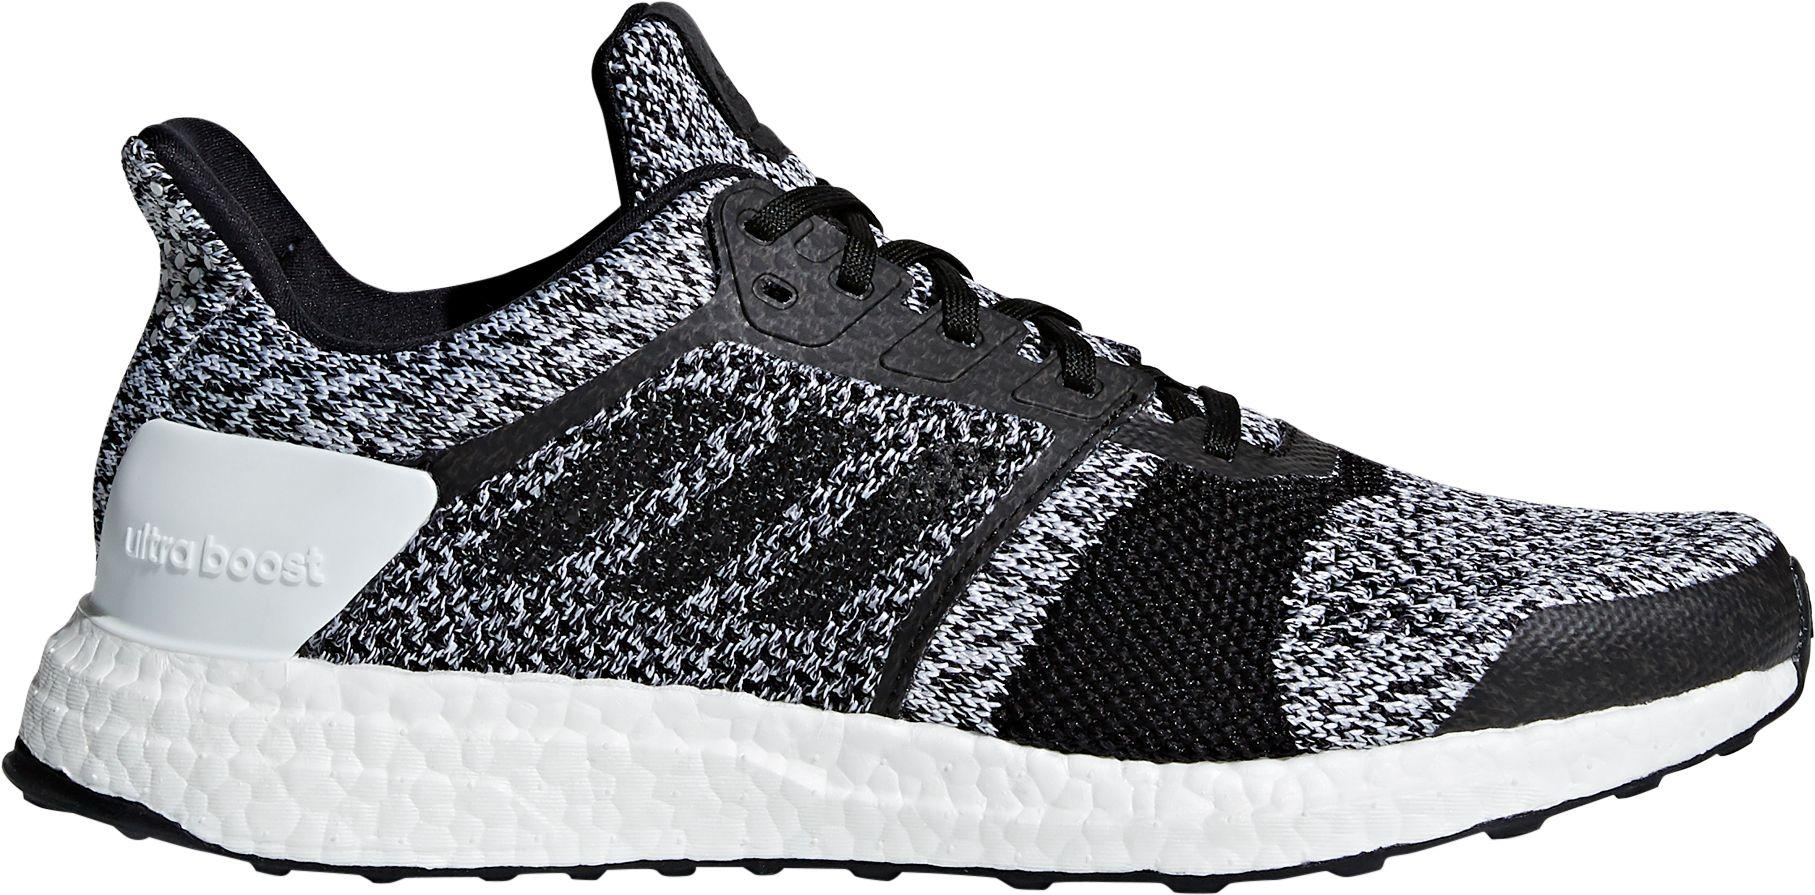 be69e19f5 Lyst - adidas Ultraboost St Running Shoes in Black for Men